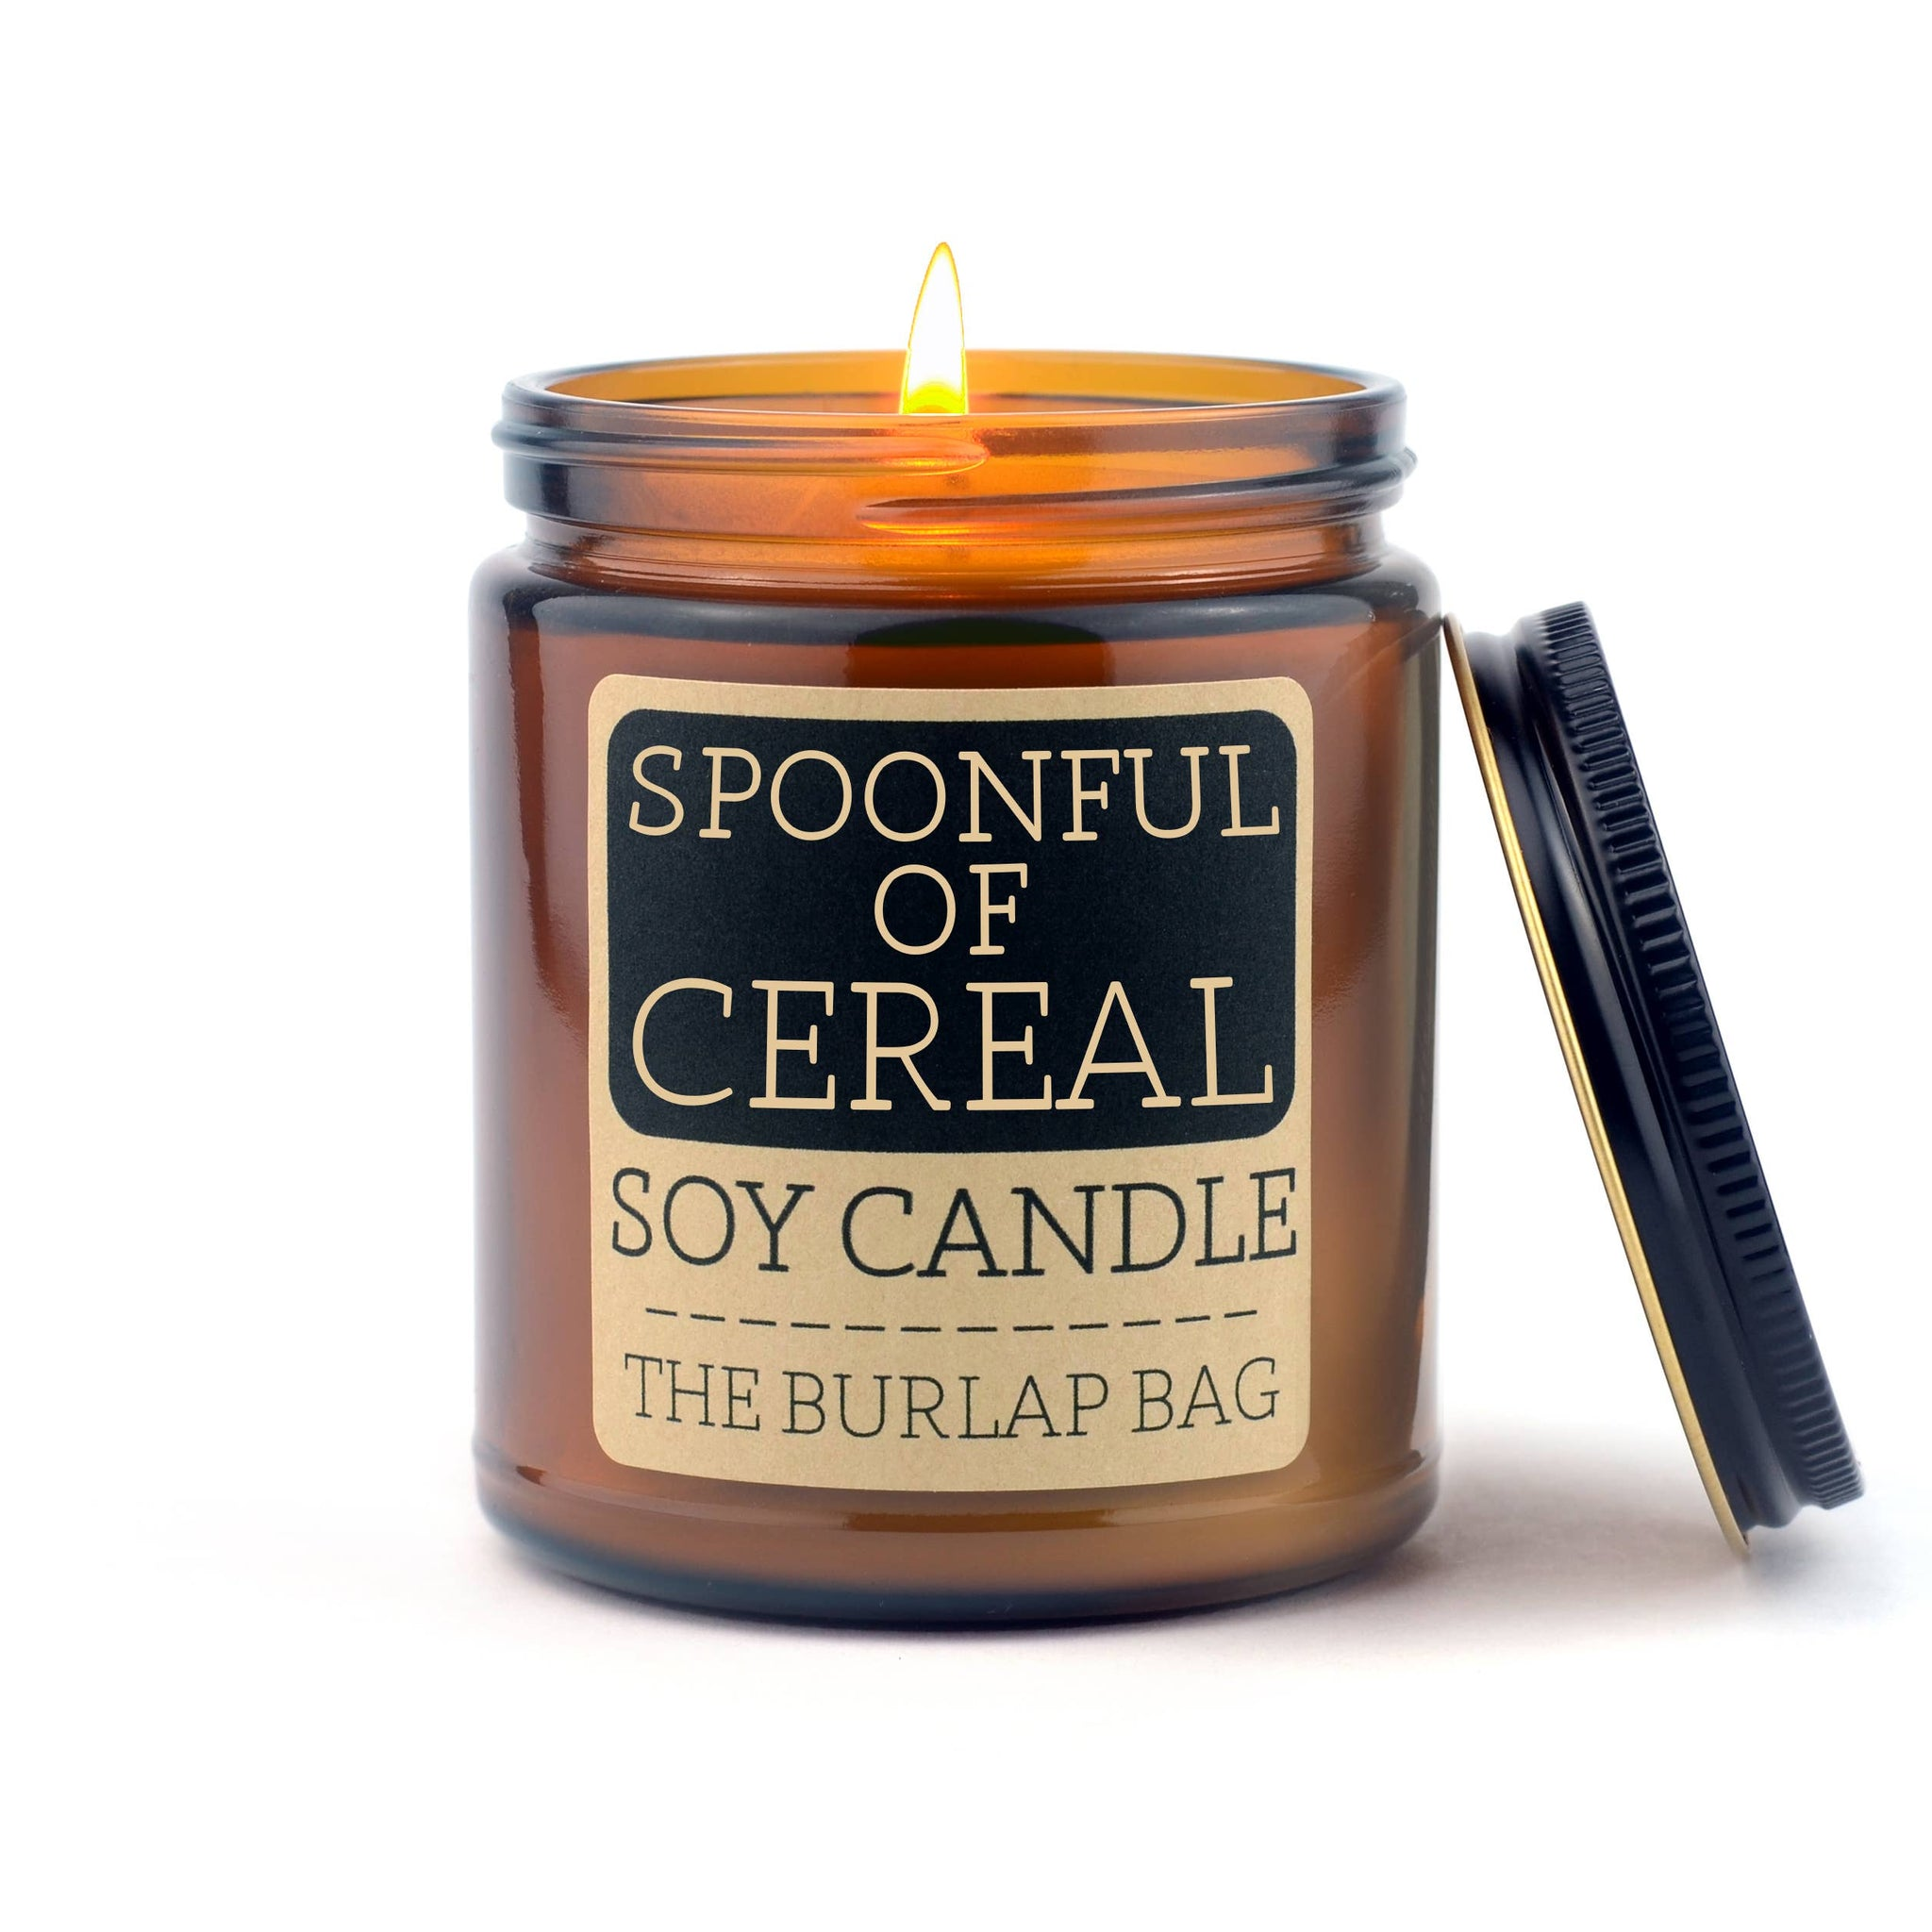 Spoonful of Cereal 9oz soy candle